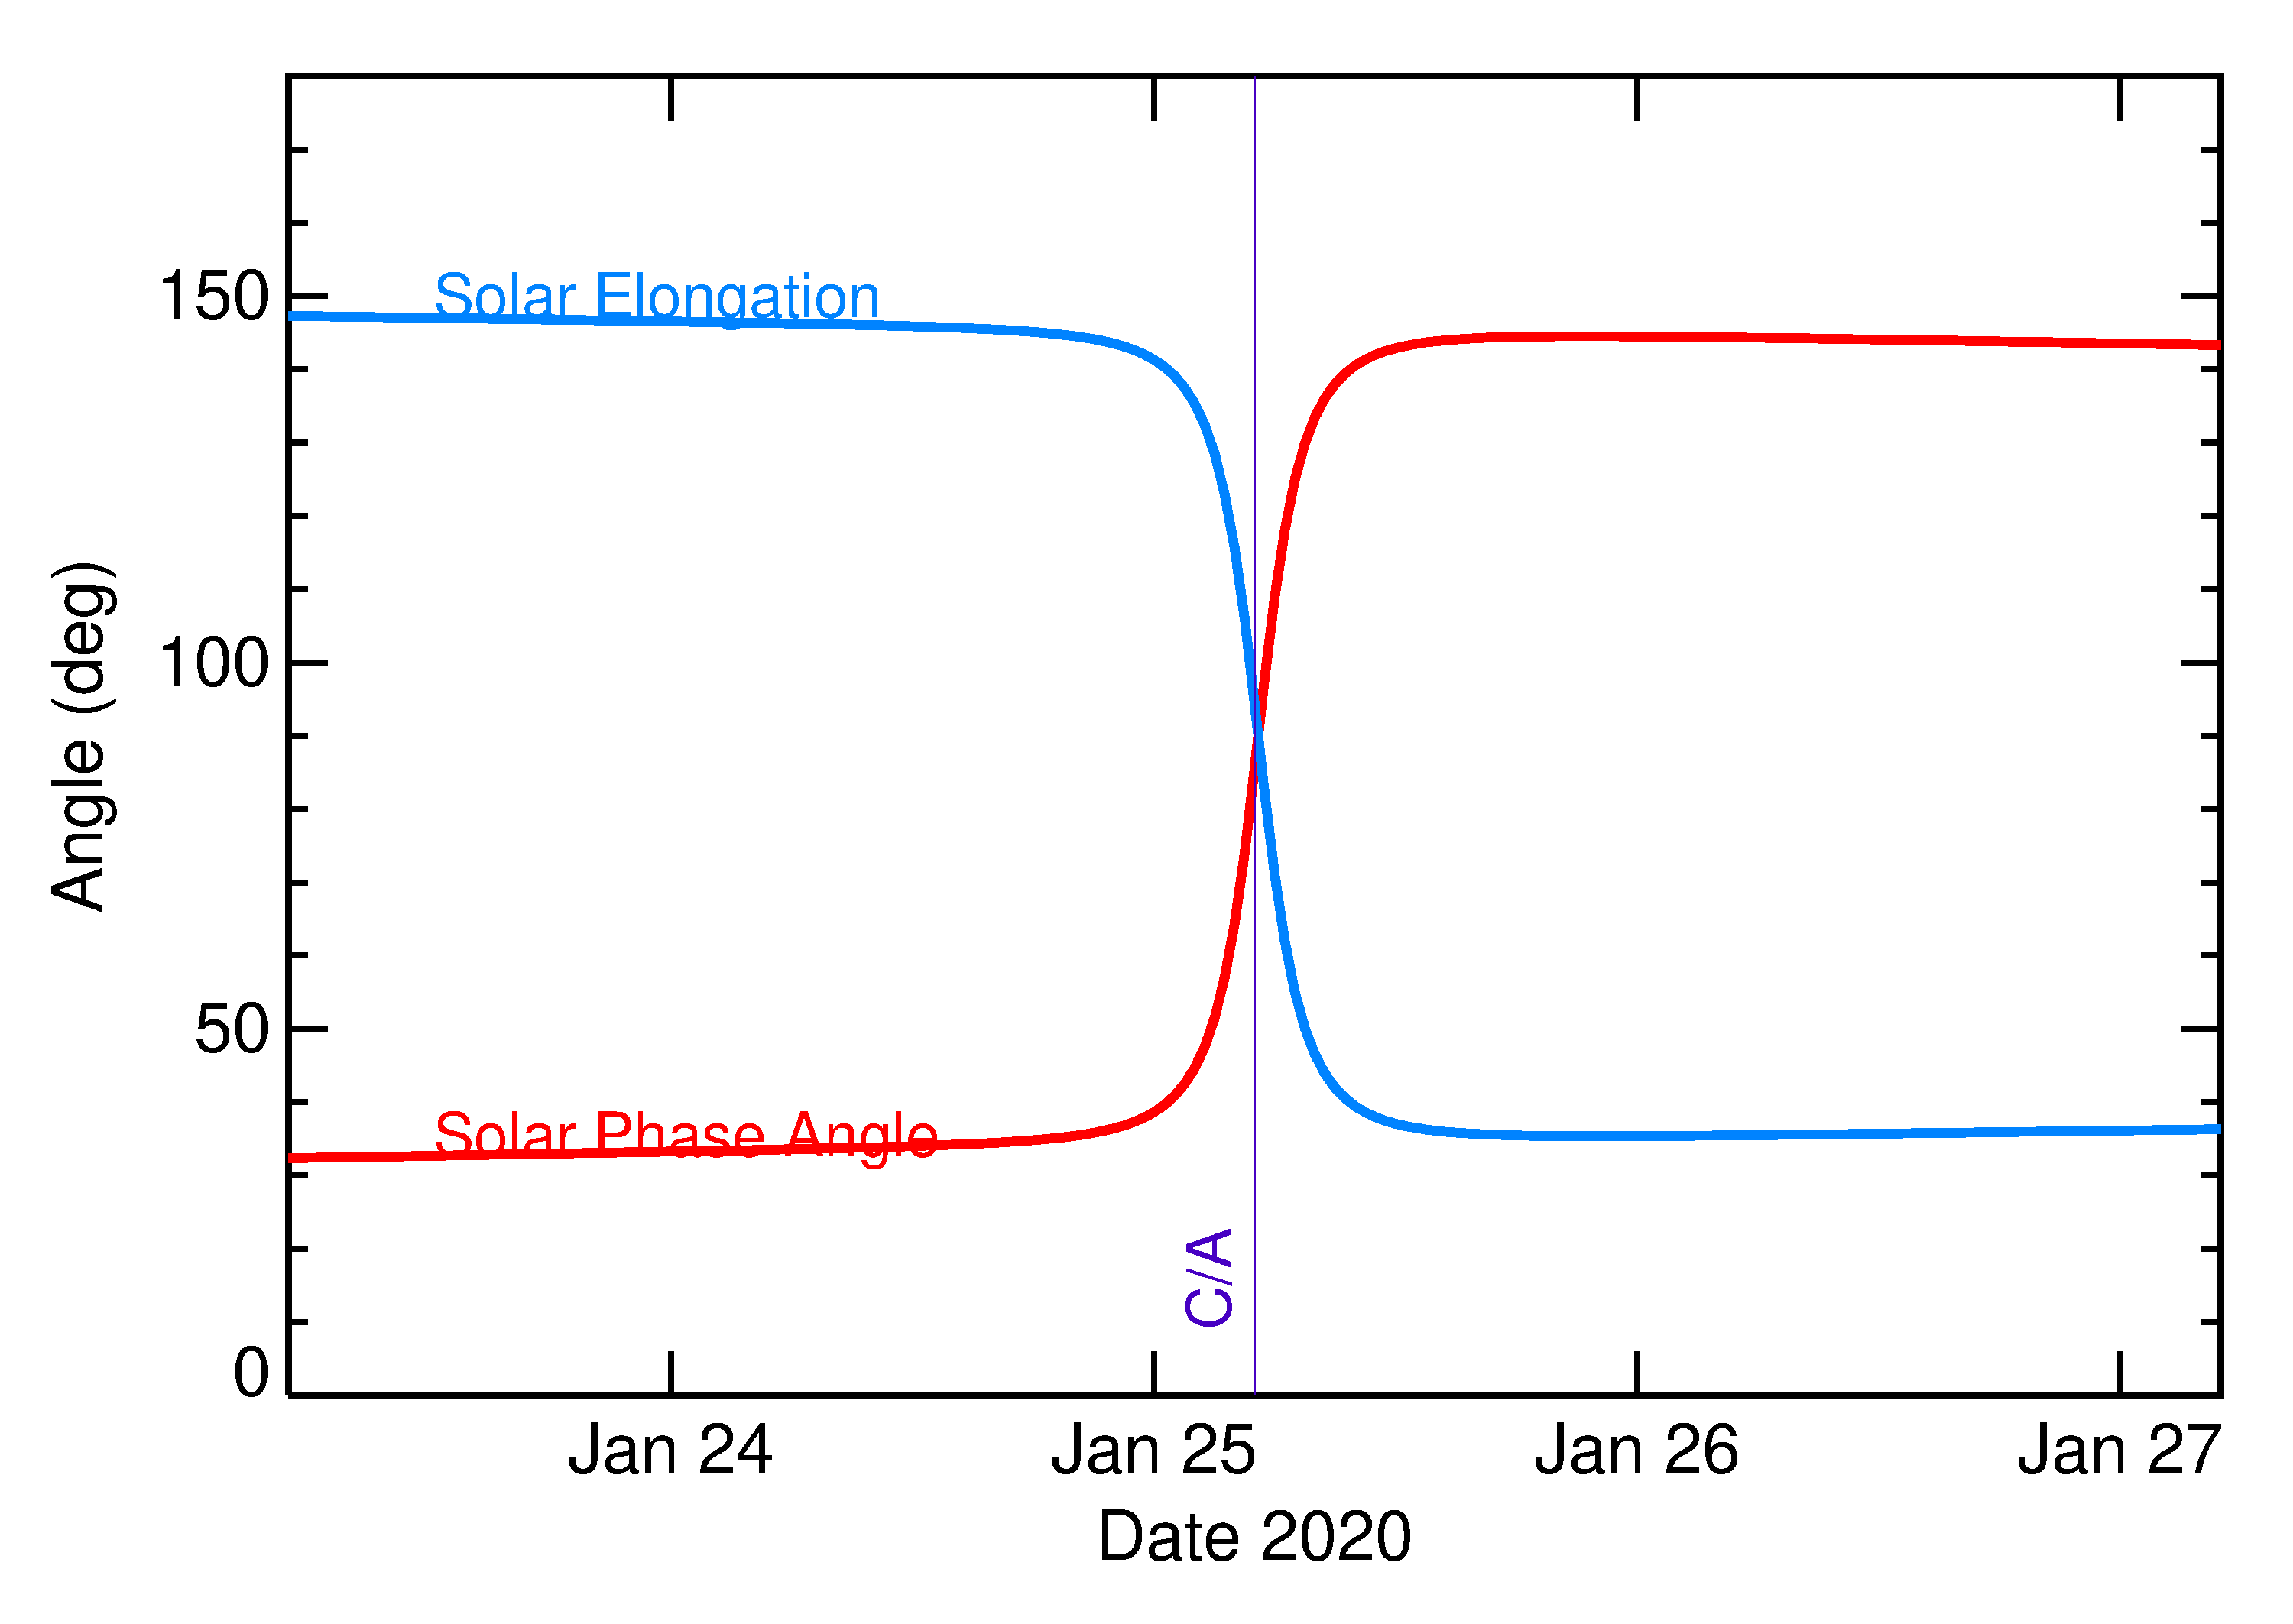 Solar Elongation and Solar Phase Angle of 2020 BH6 in the days around closest approach